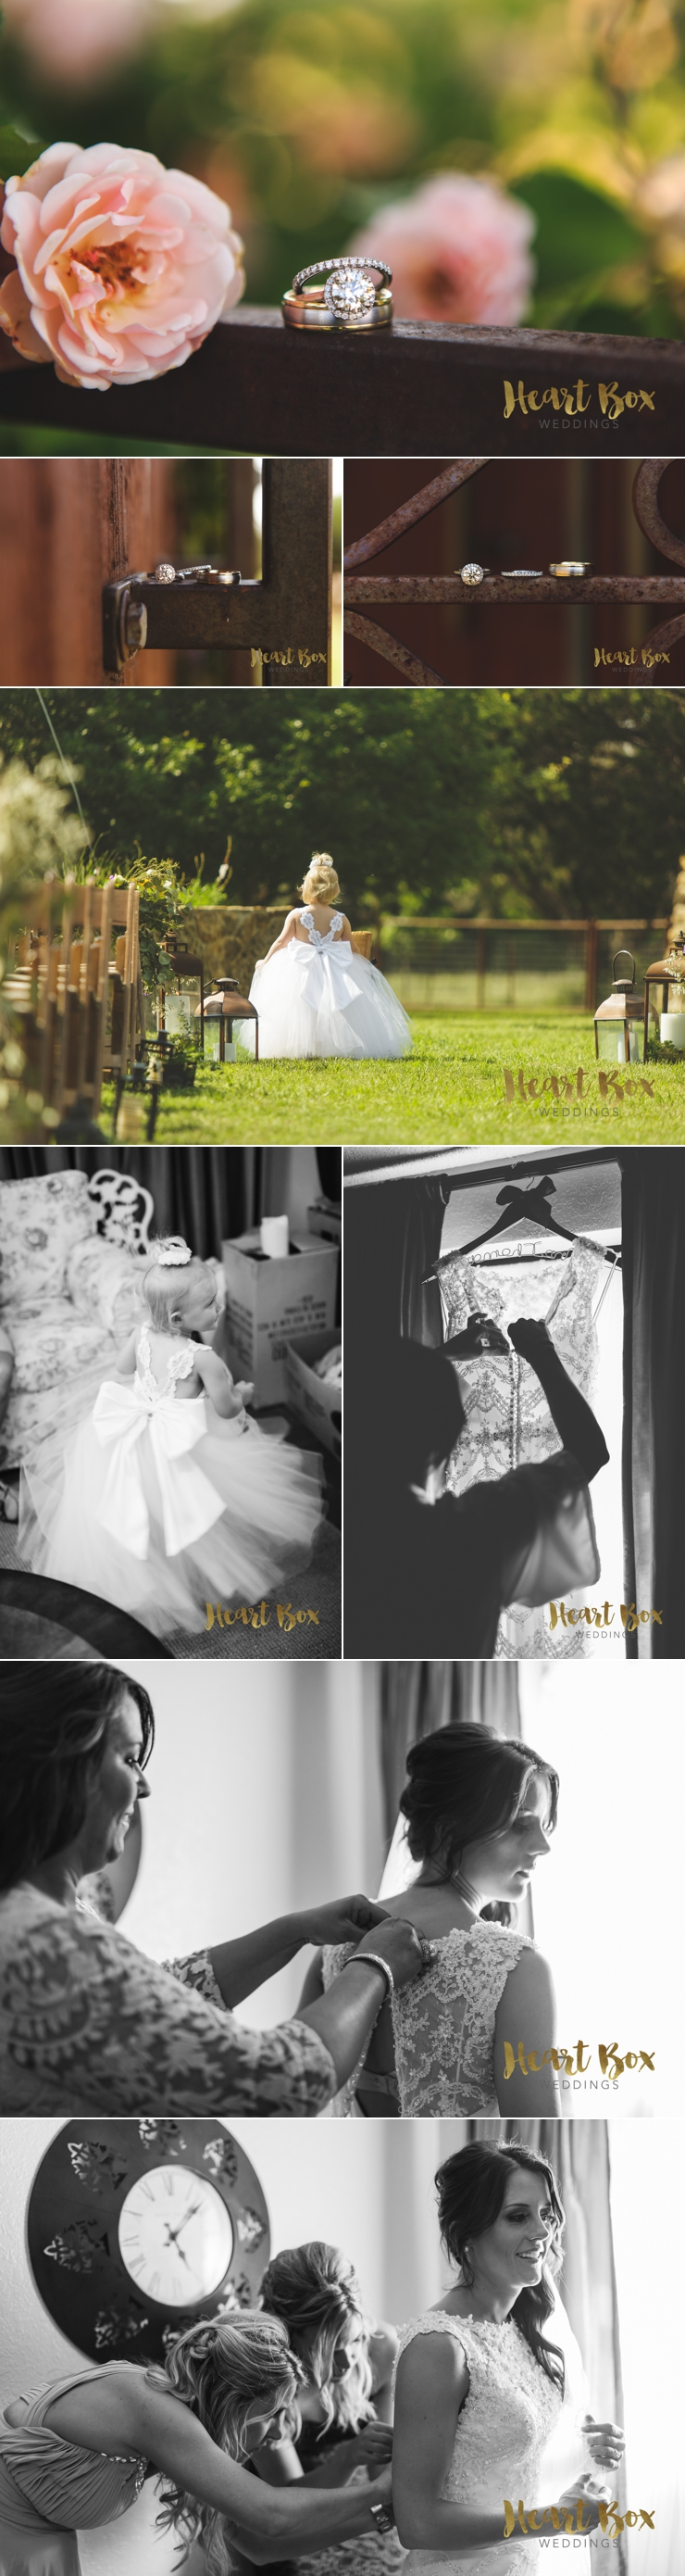 Thomas Wedding Blog Collages 2.jpg